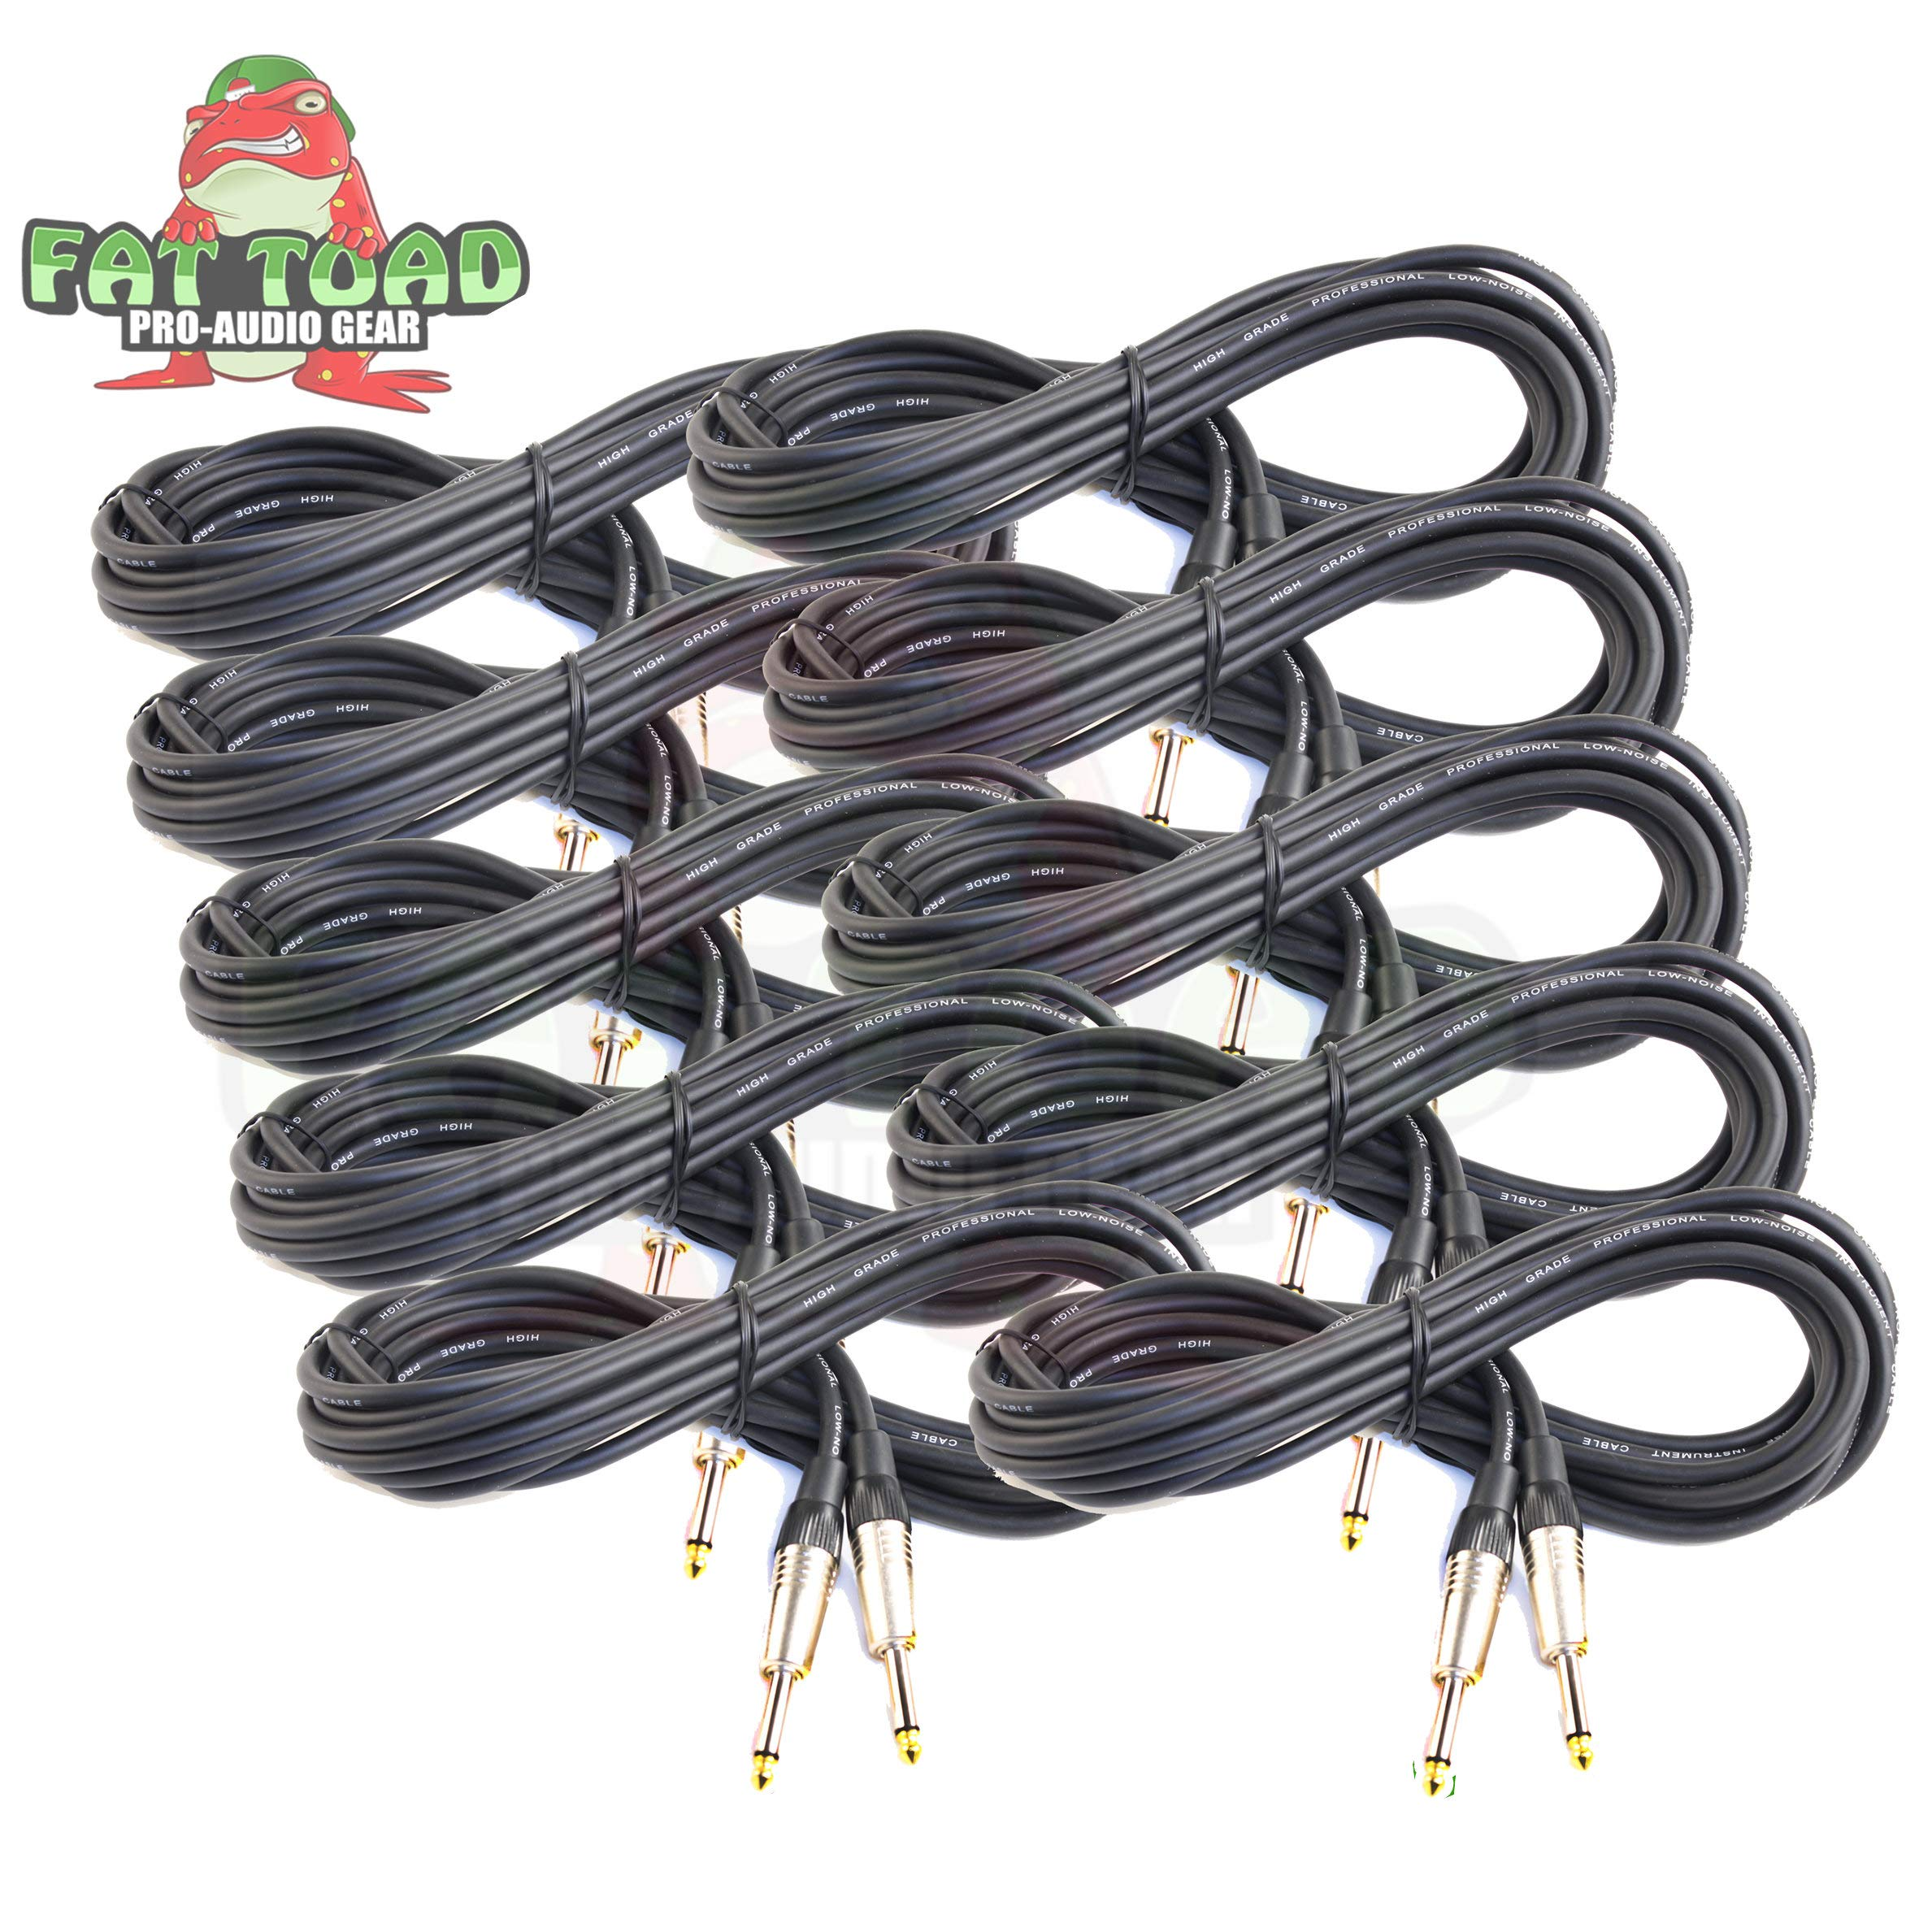 Guitar Cables (10 Pack) Instrument Cord by Fat Toad | 20 Gauge Patch Conductor for Electric or Acoustic Guitar, Bass, Keyboards & Pro-Audio Recording Studio|Shielded 20 FT 1/4 Inch Straight-End Wires